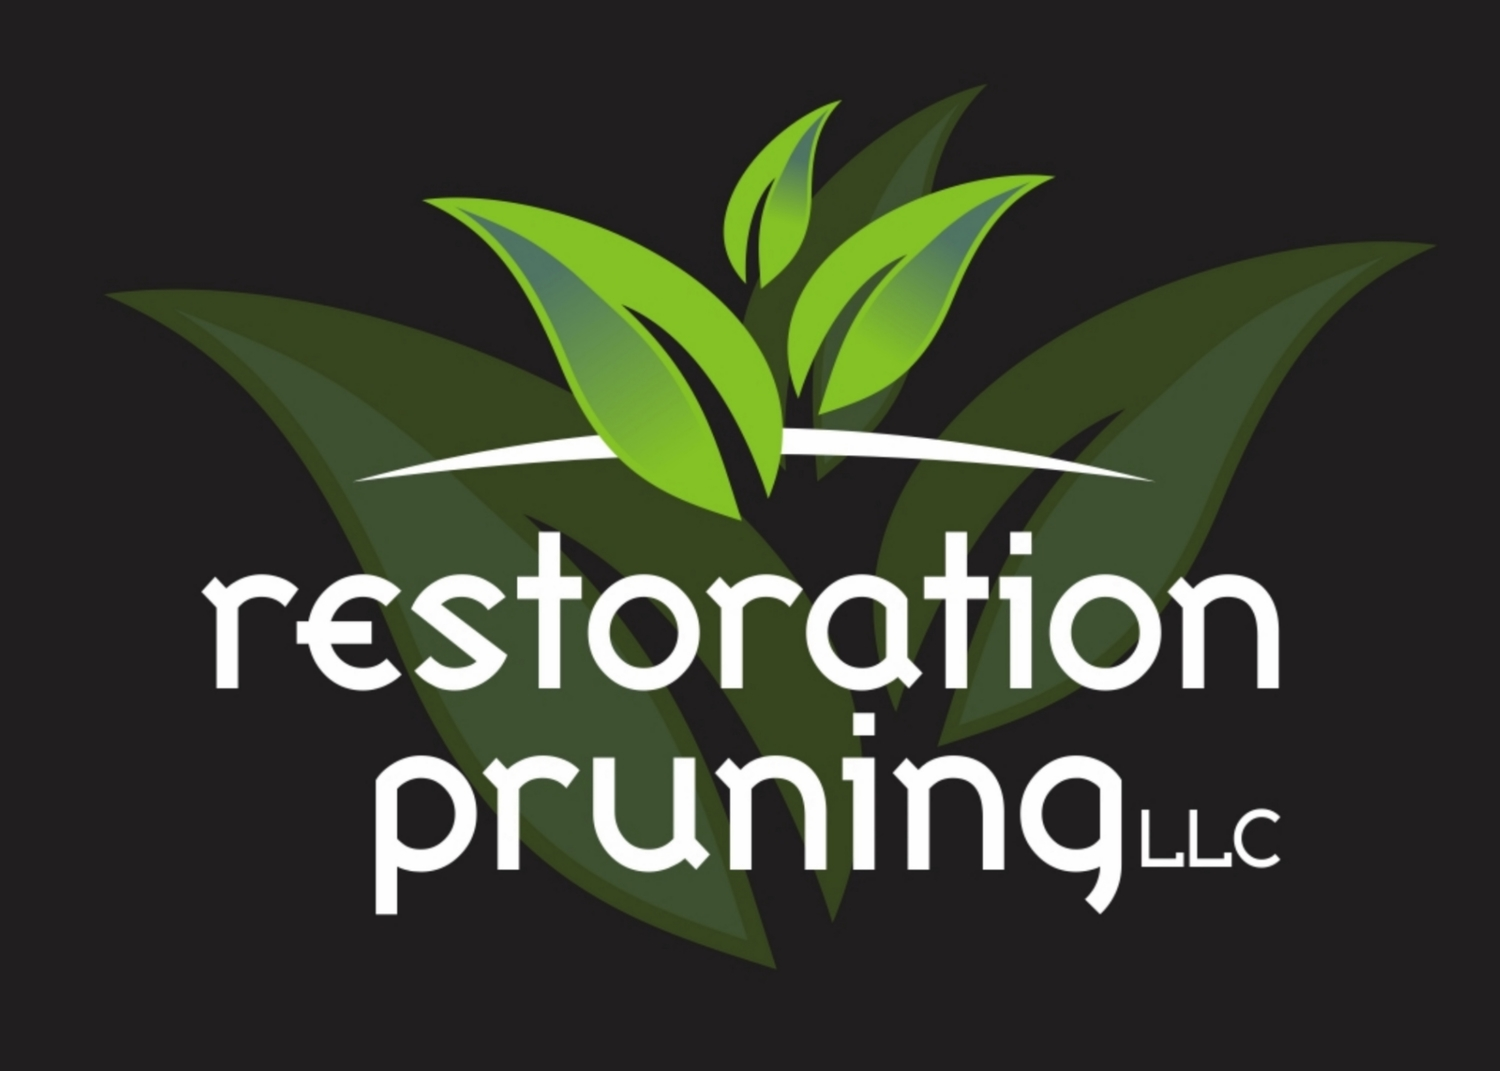 tree work articles restoration pruning restoration pruning middot home tree work articles